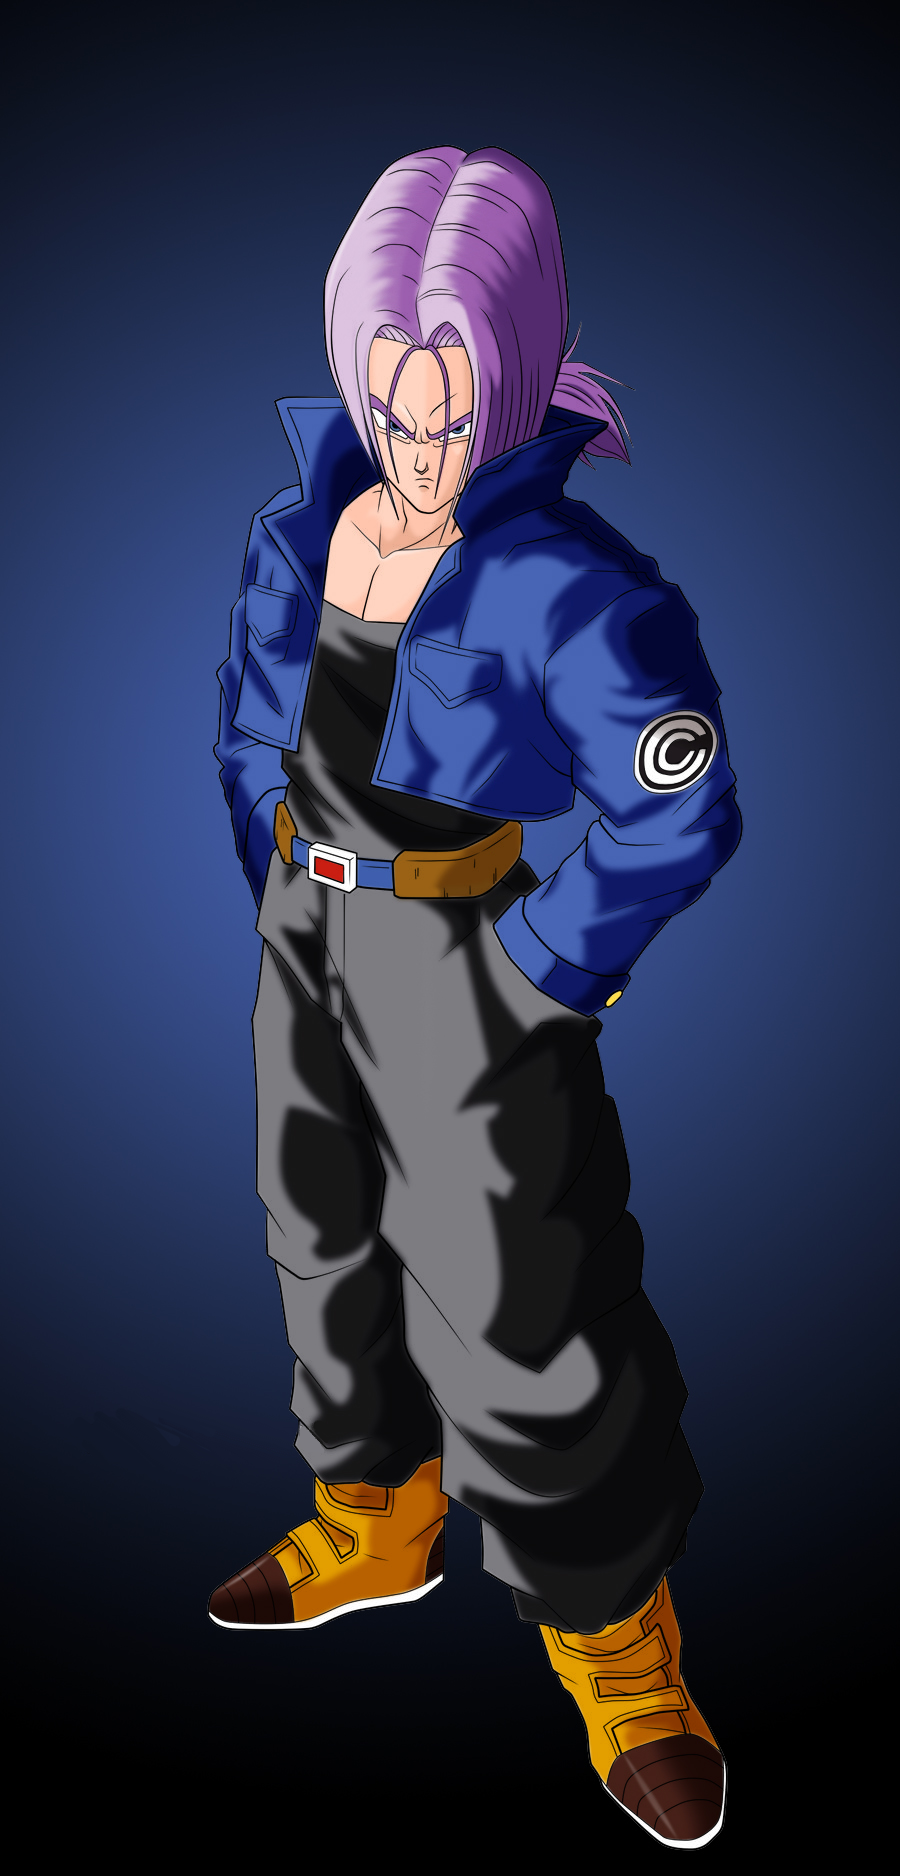 Future Trunks | Dragon Ball AF Fanon Wiki | FANDOM powered ...